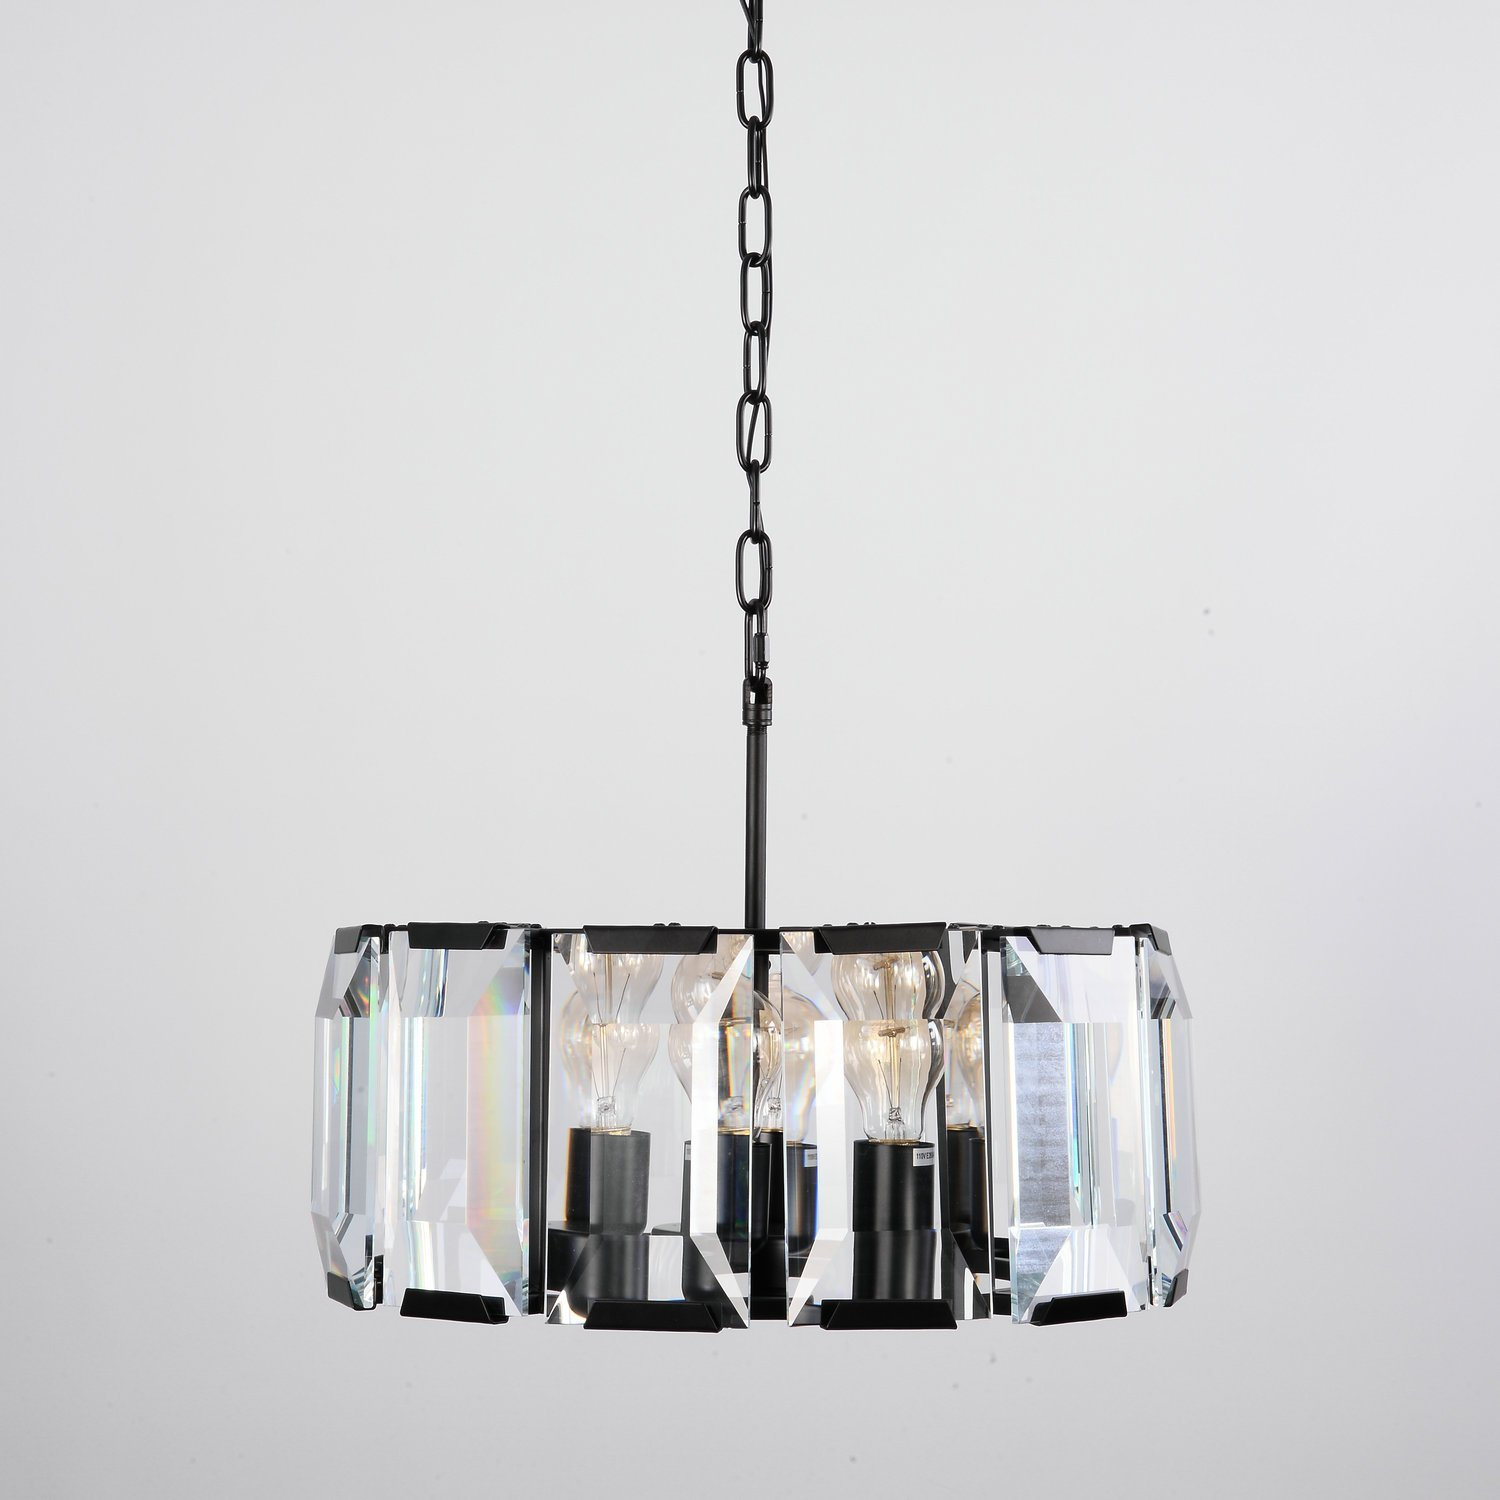 LightInTheBox Vintage Bulk Crystal Ceiling Chandelier, Modern Home Ceiling Light Fixture Flush Mount, Pendant Light Chandeliers Lighting, Voltage=110-120V